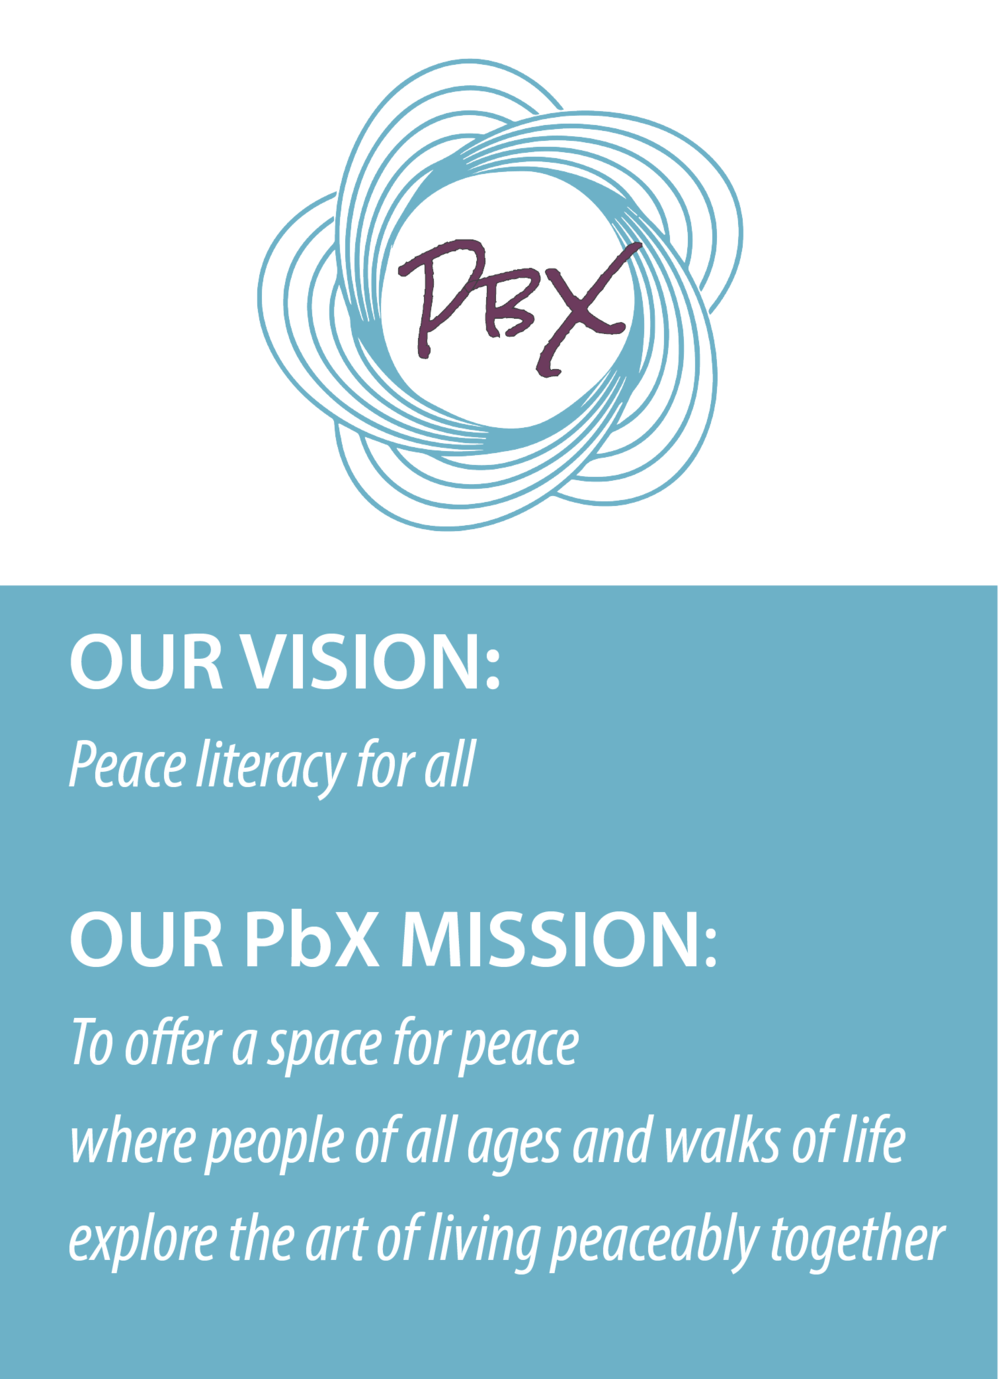 pbx-graphics-mission-01.png